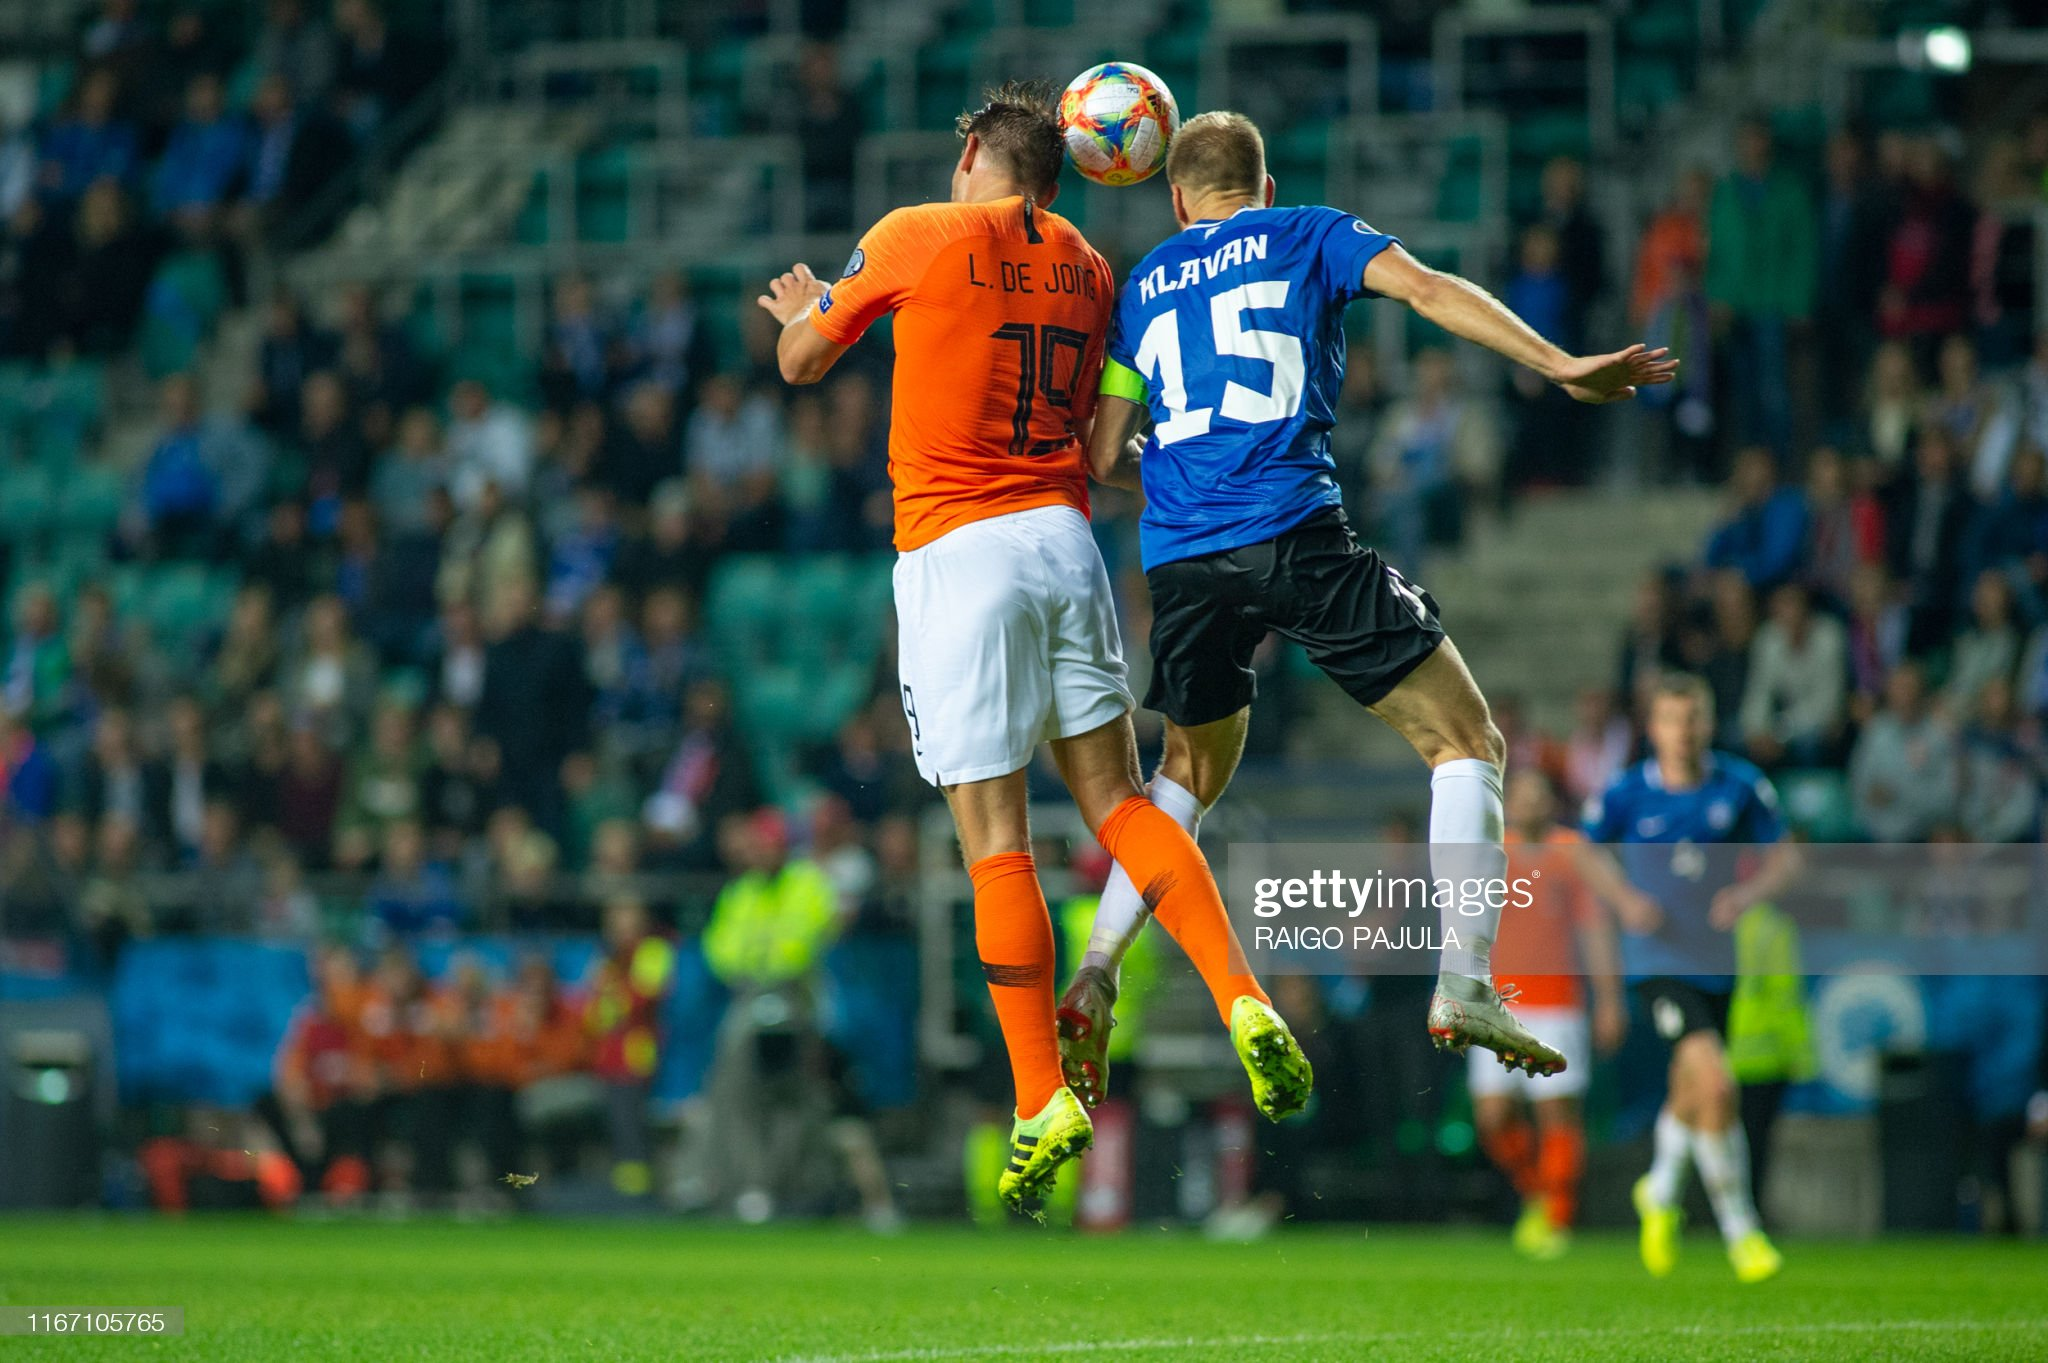 Netherlands v Estonia preview, prediction and odds